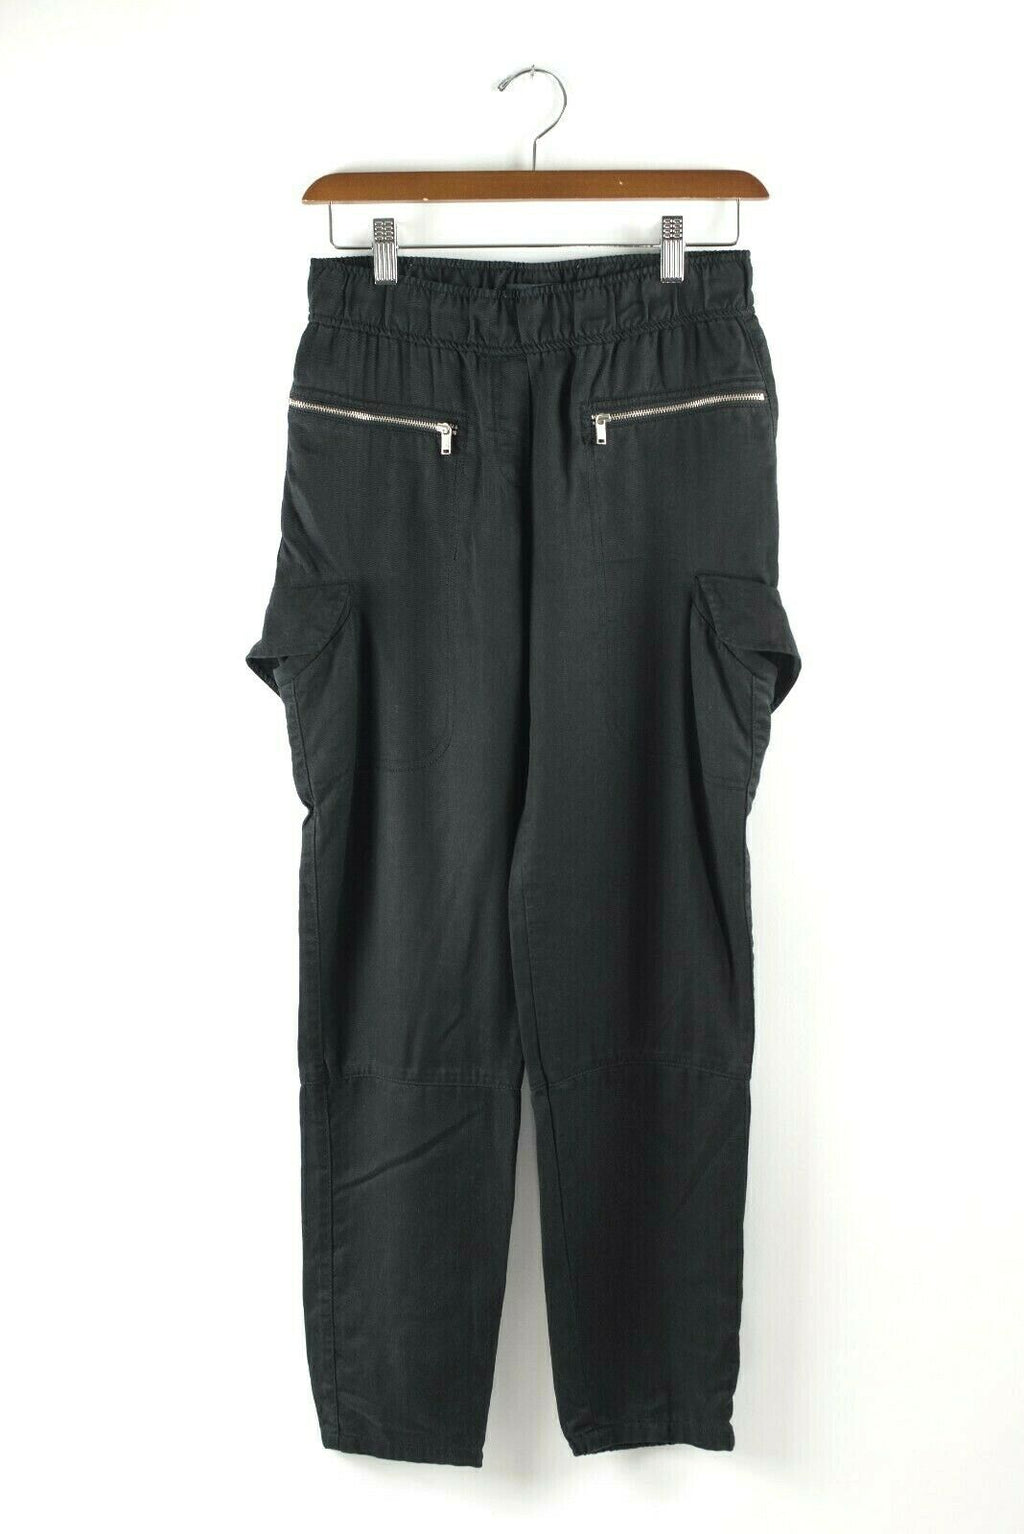 Aritzia Babaton Womens Size XXS Black Jogger Pants Pull On Cargo Pocket Skinny